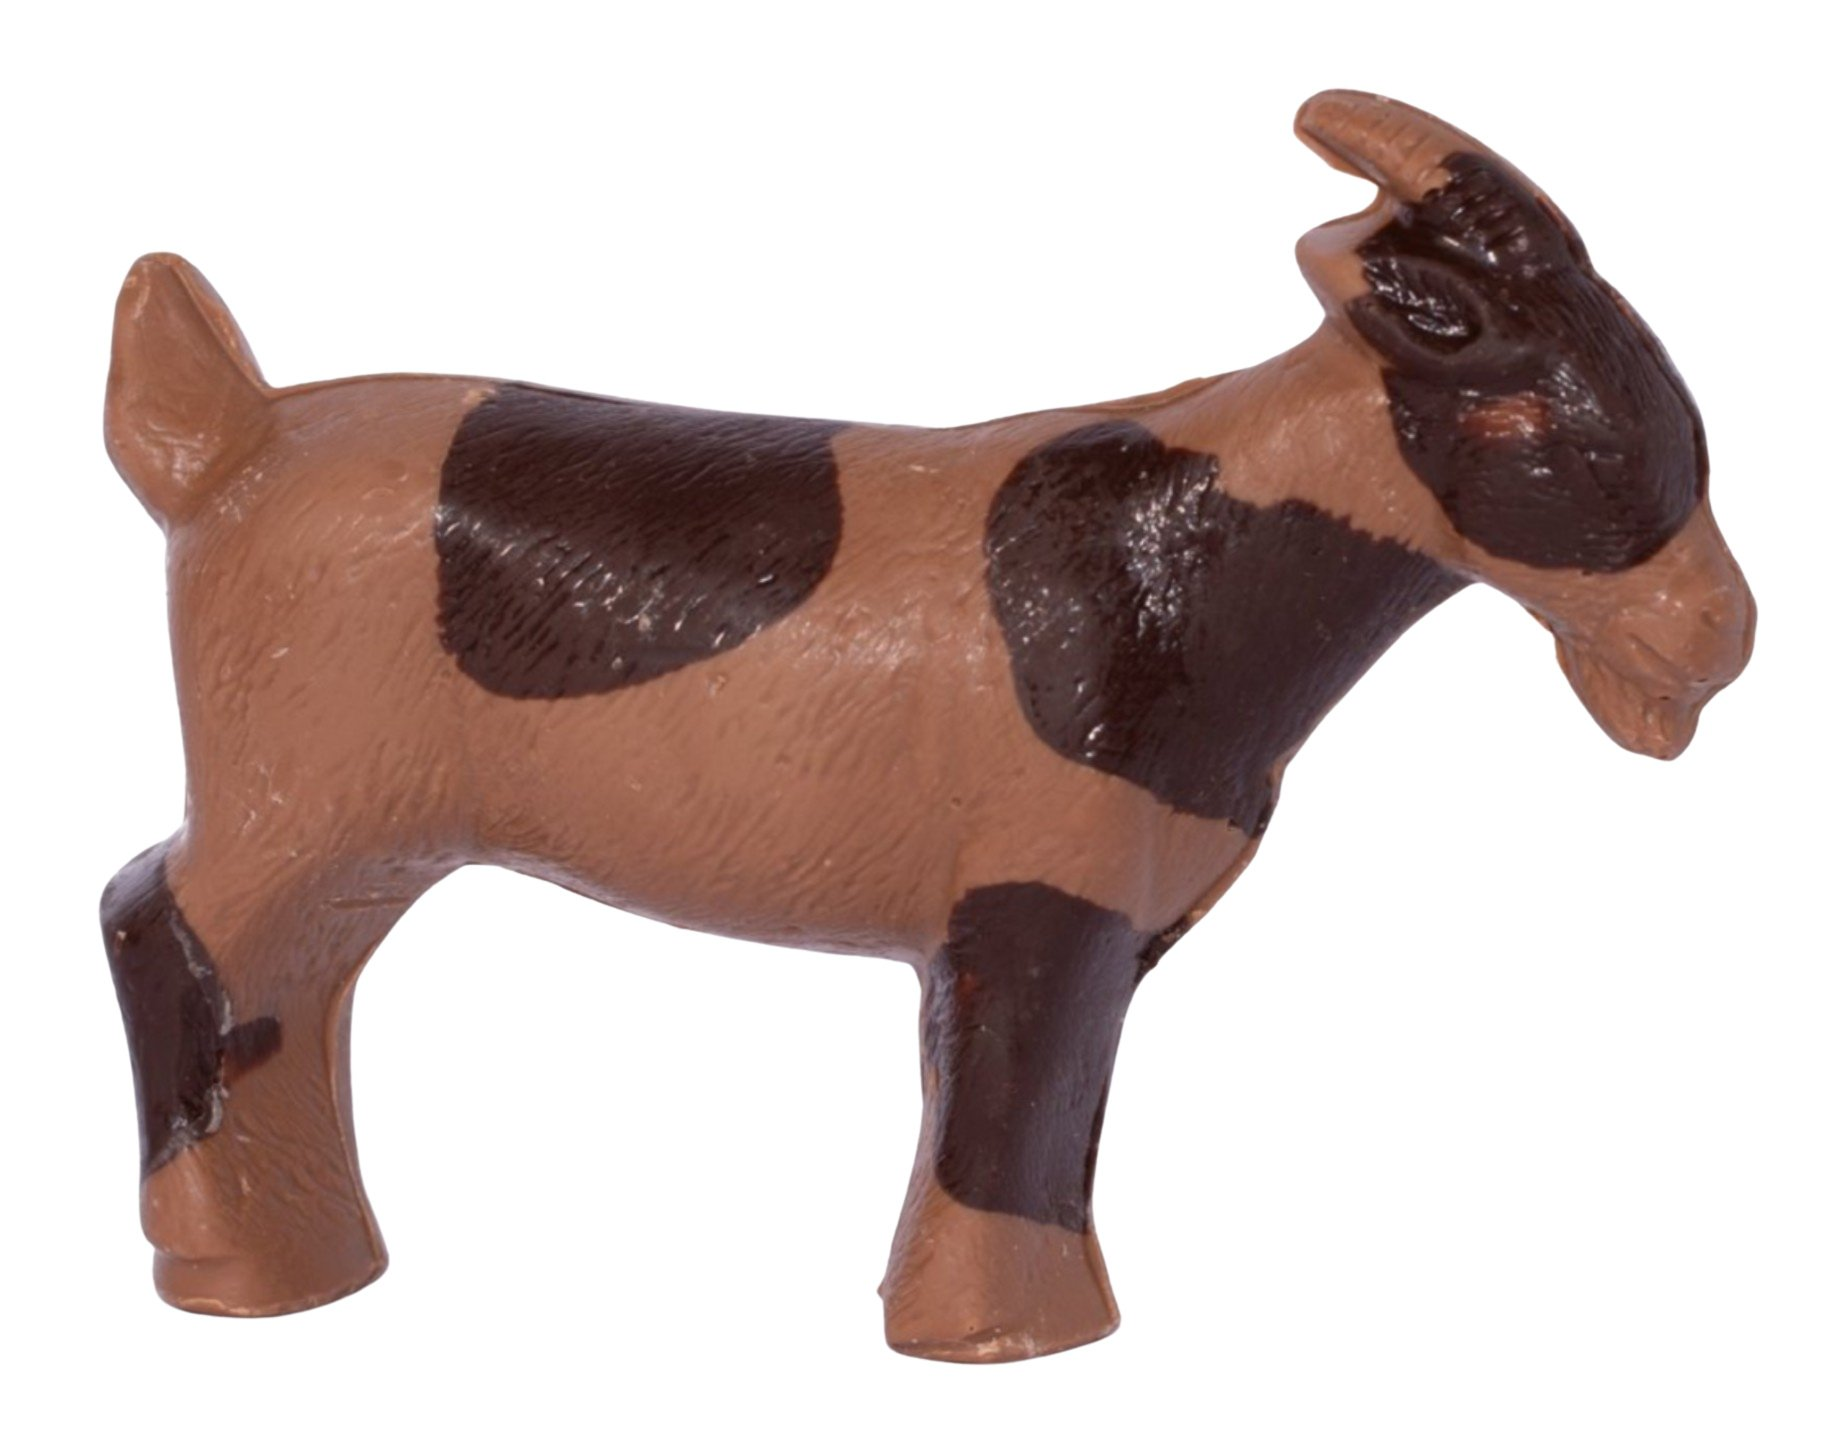 Papa Goat - 7oz milk chocolate goat with spots